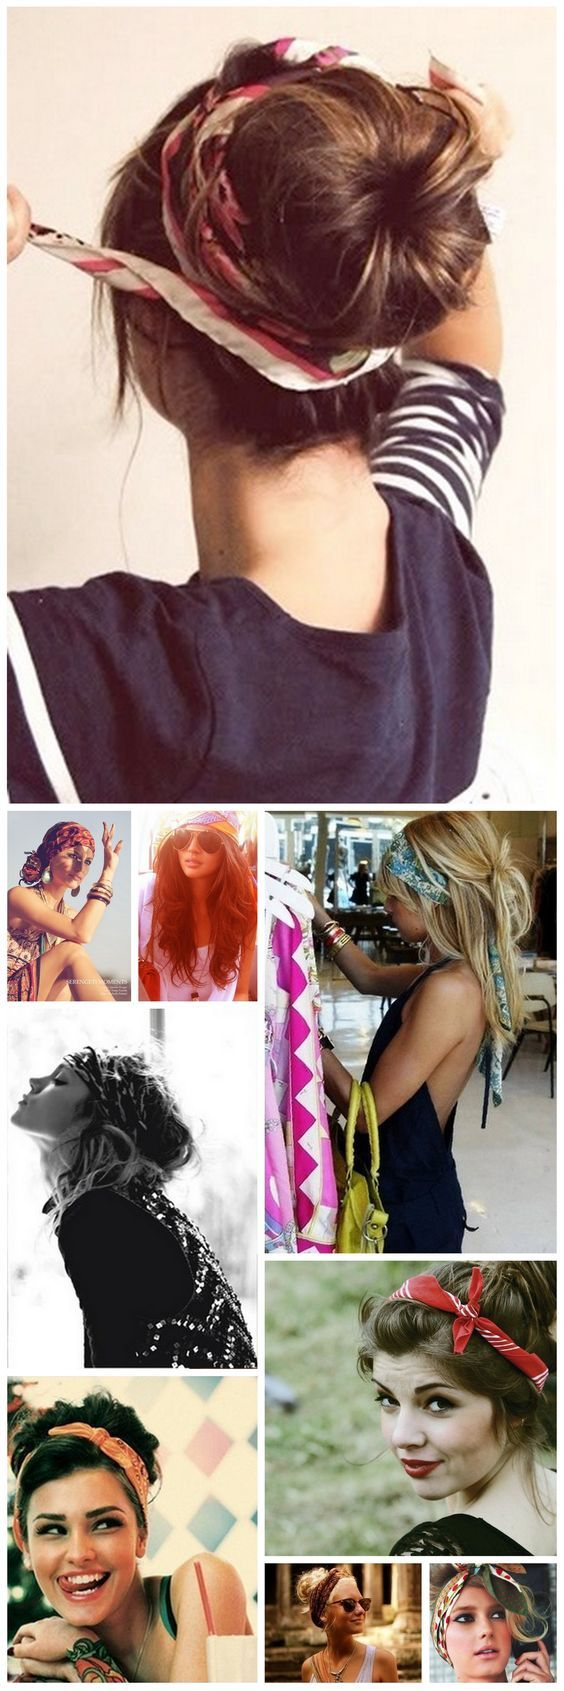 5 Minute Hairstyles For Girls 25 Best Ideas About Quick Hairstyles On Pinterest Easy Hair Up